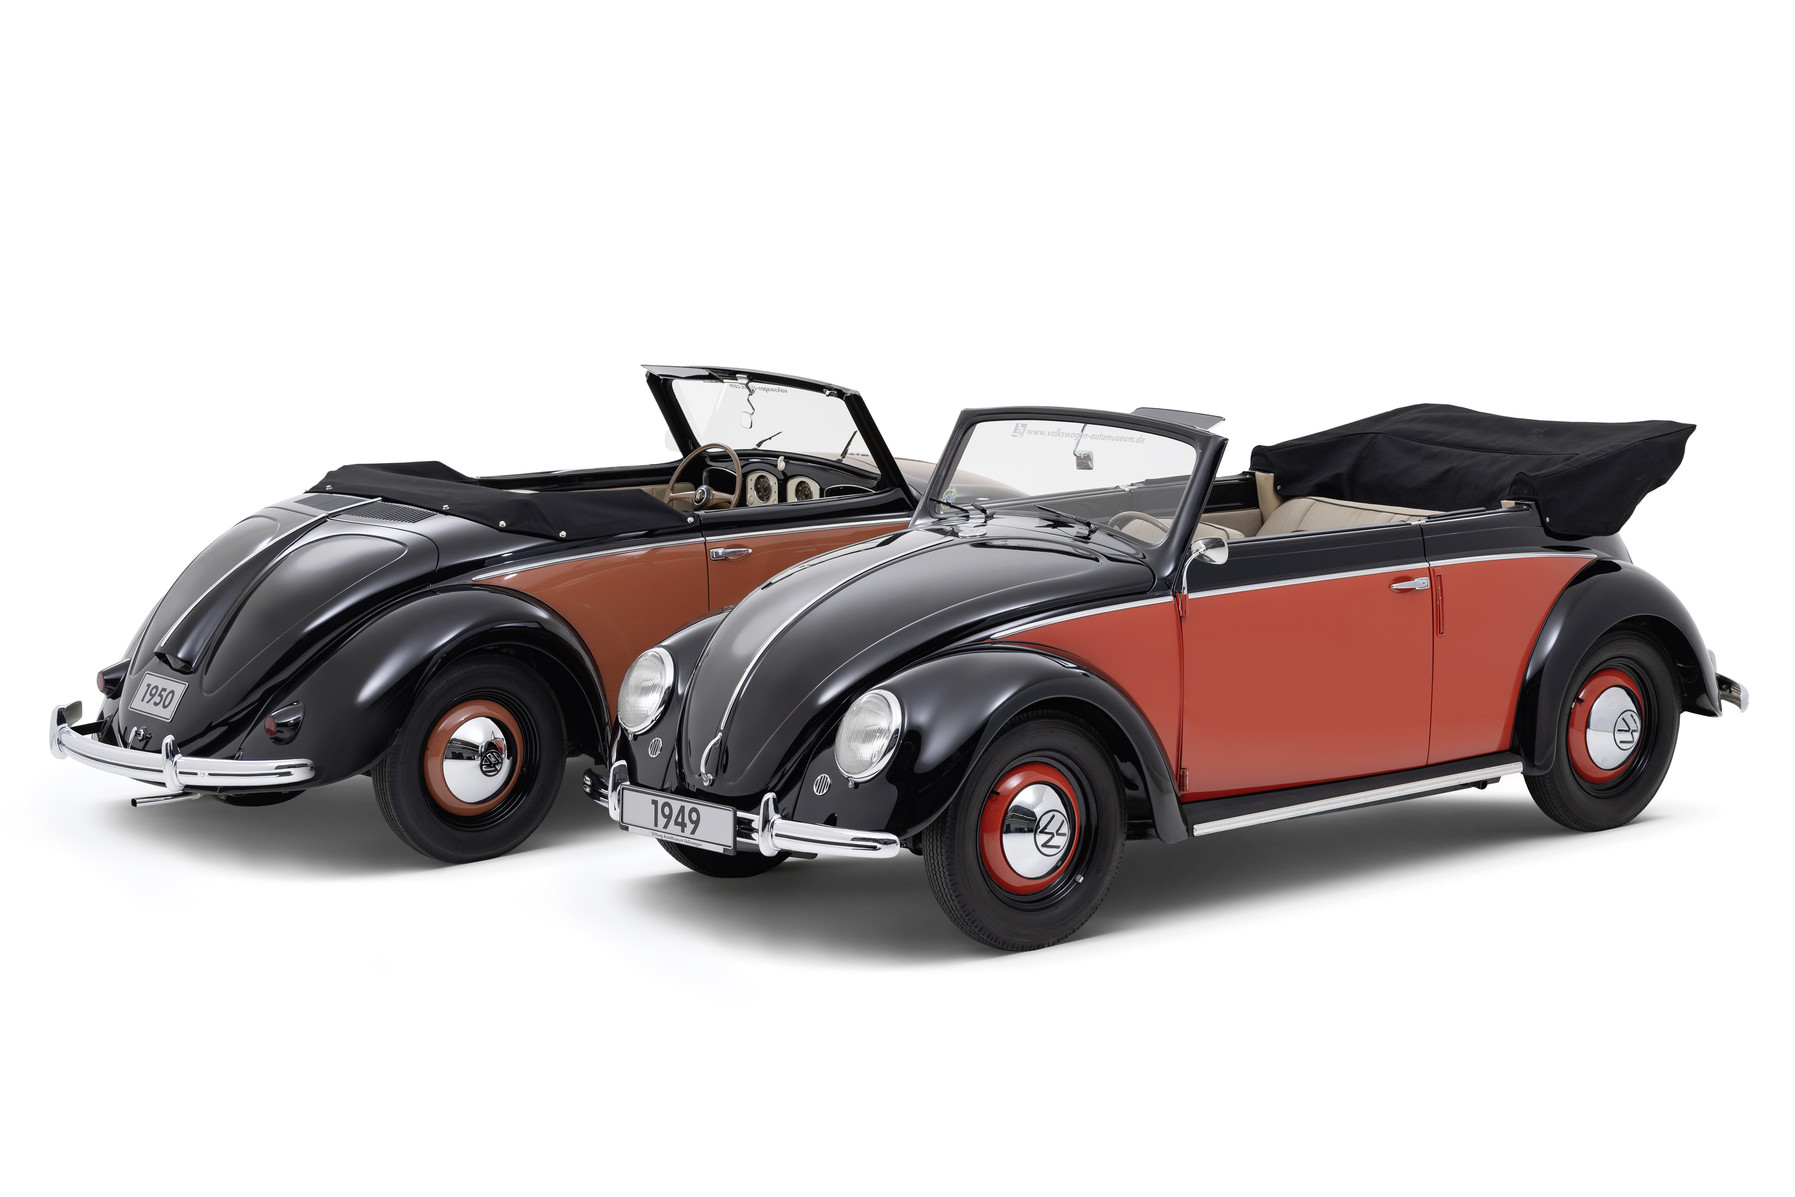 70 years of production of the Beetle Cabriolet: Volkswagen 1100 Hebmüller Cabriolet (left) and Volkswagen 1100 Karmann Cabriolet